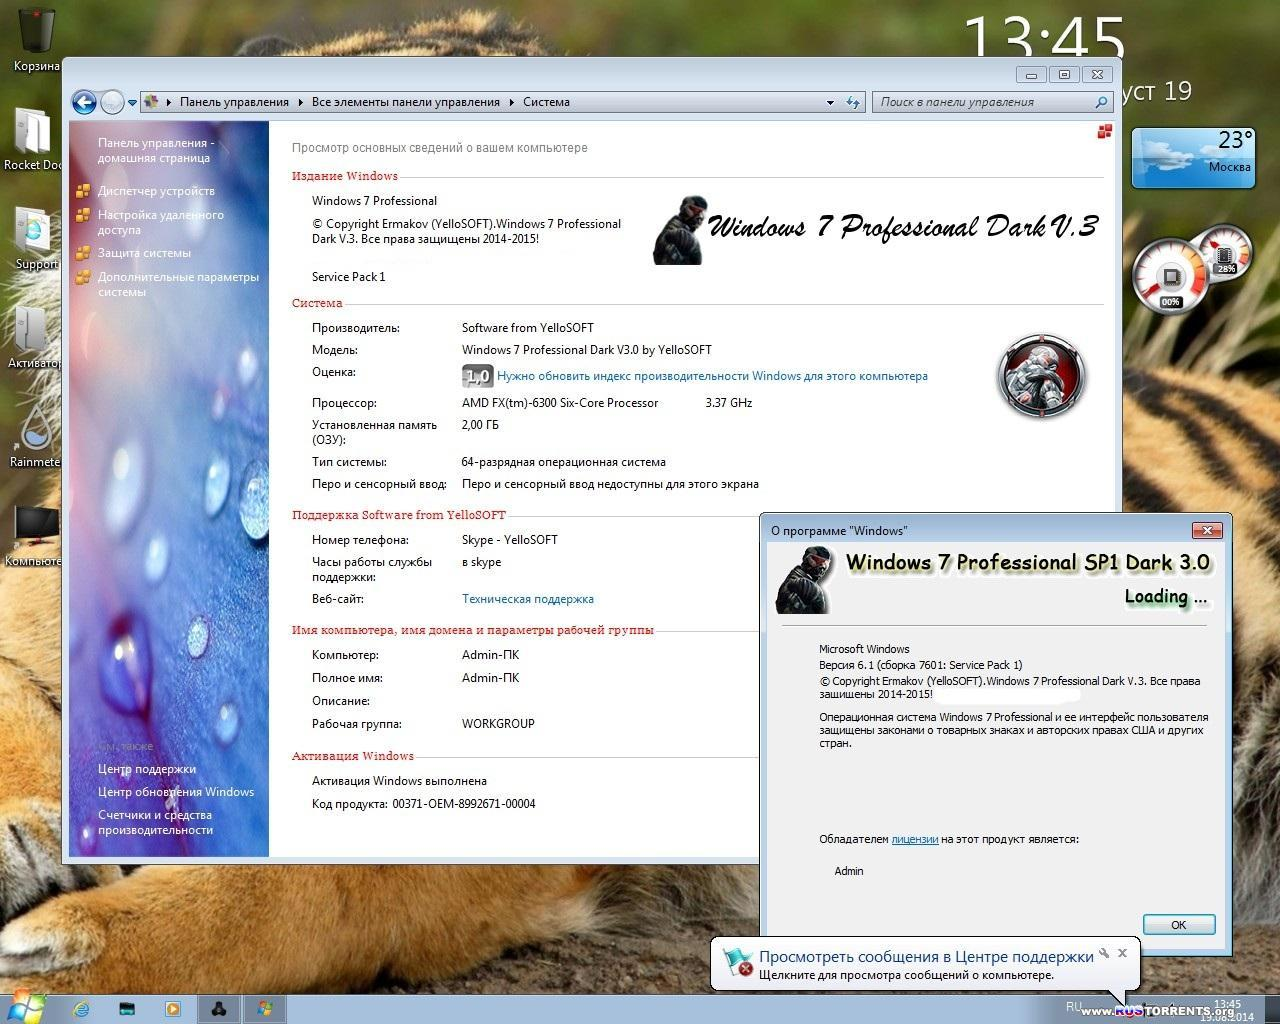 Windows 7 Professional SP1 x86/x64 (Dark 3.0) by YelloSOFT RUS